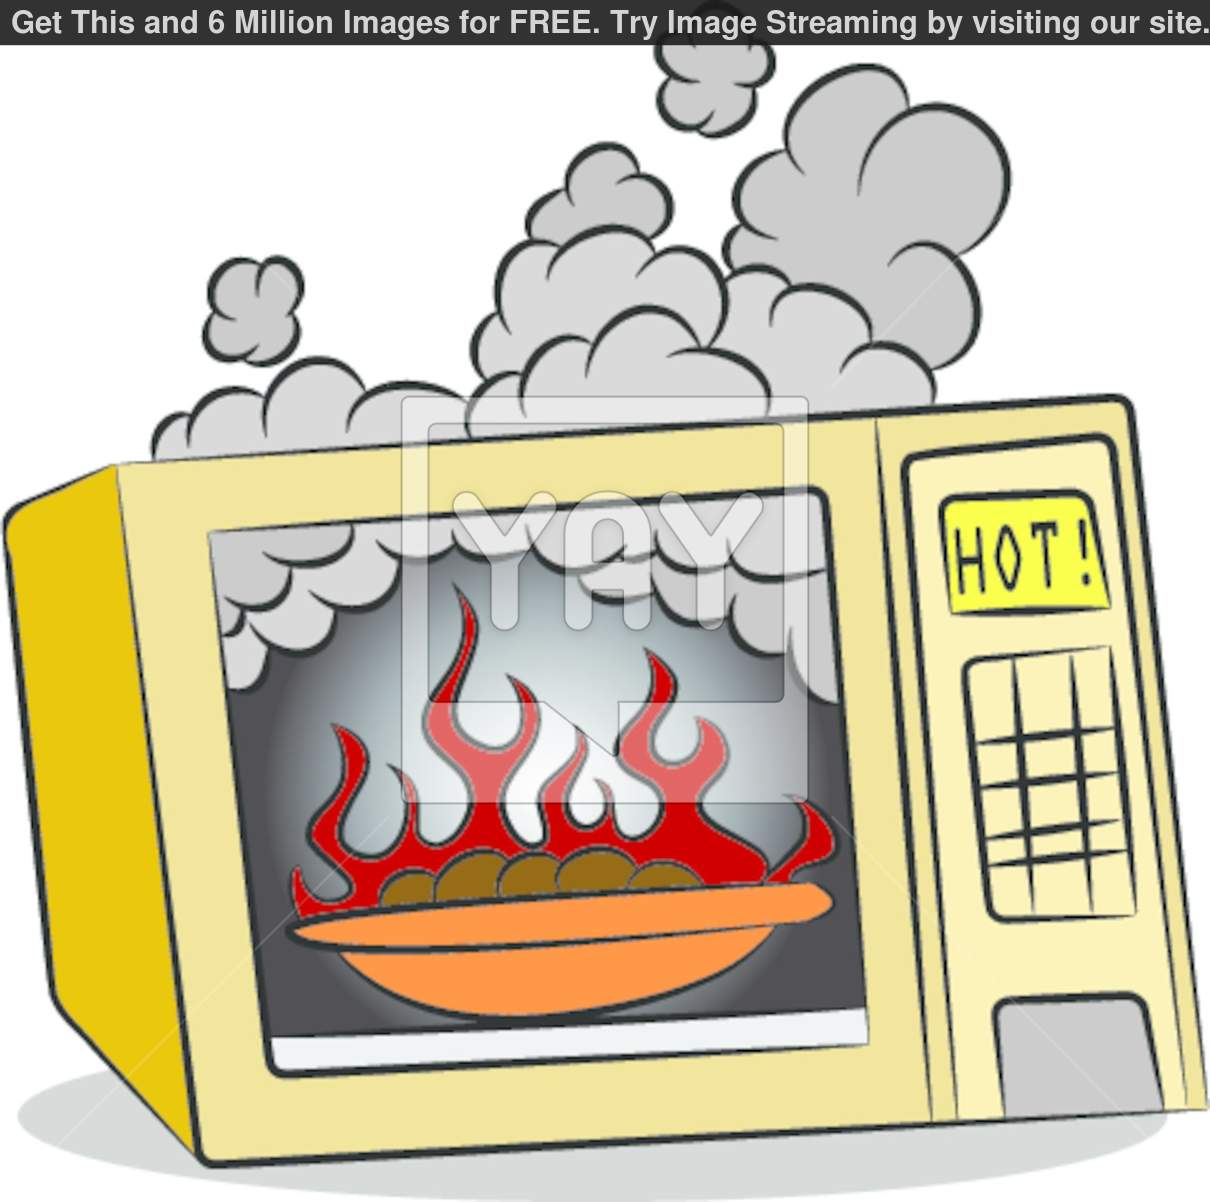 Microwave Clip Art Food Burning In Microwave Oven